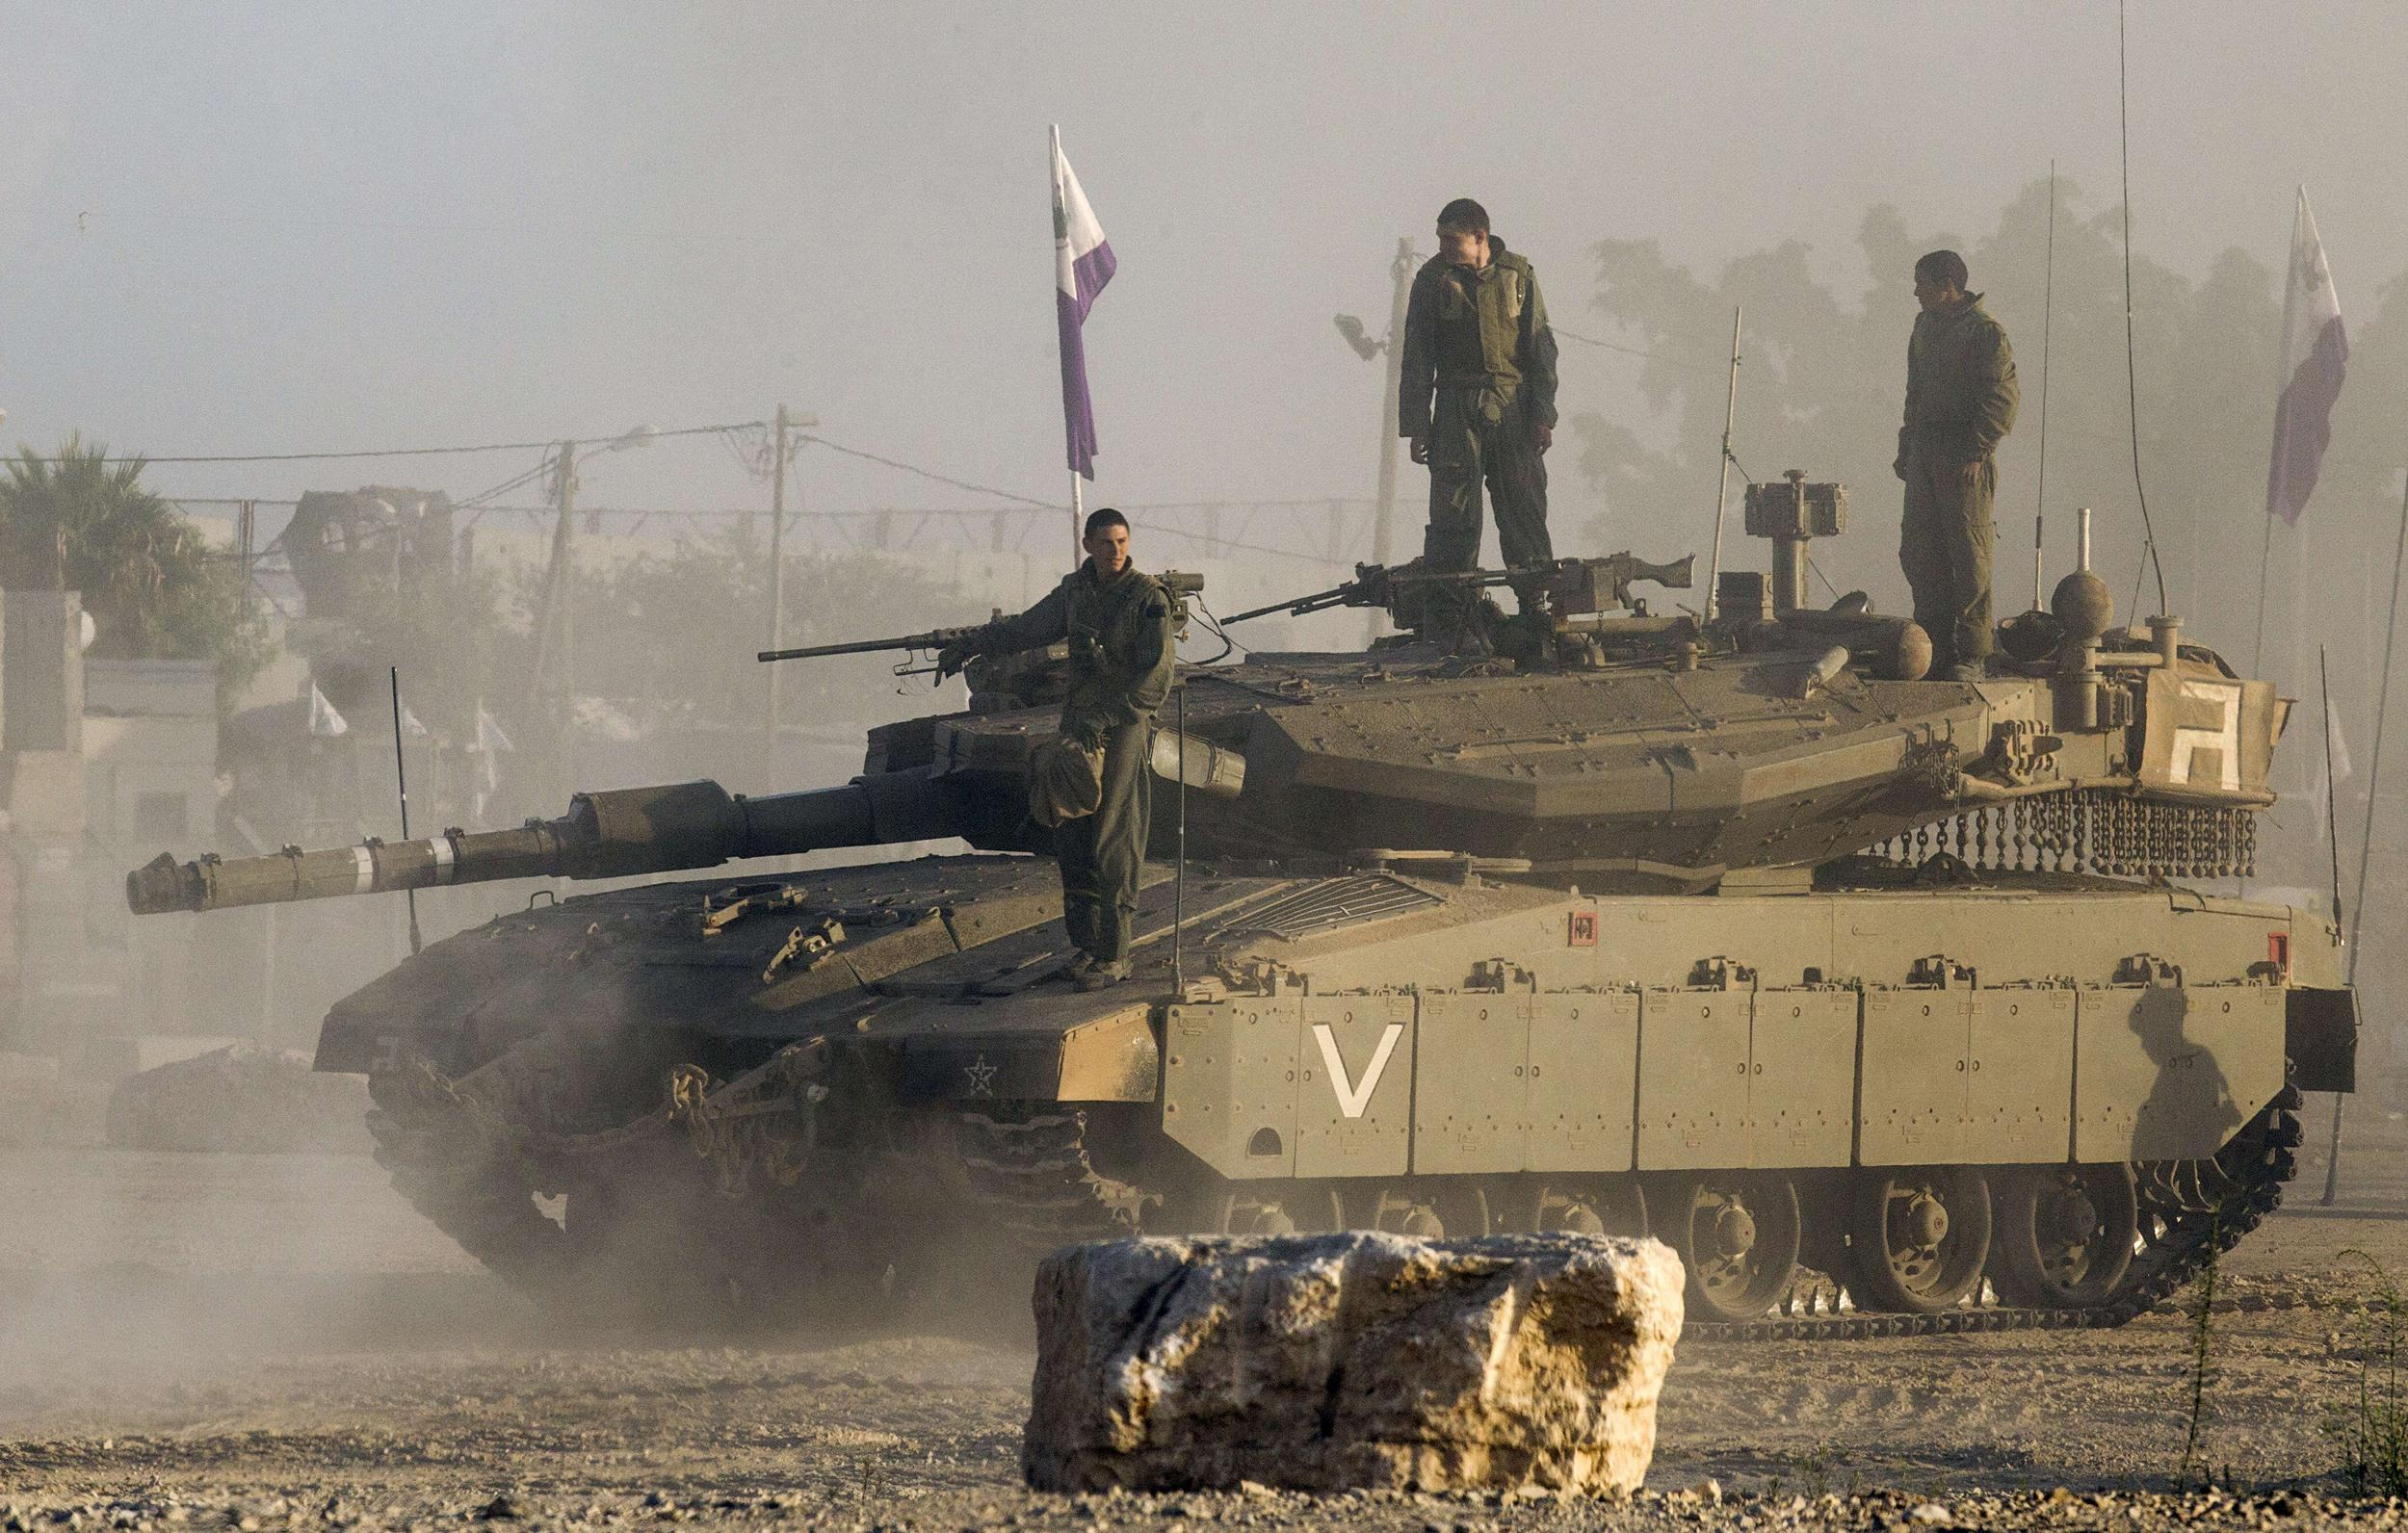 Image: Israeli soldiers stand on their Merkava tank on July 17, 2014 at an army deployment area near Israel's border with the Gaza Strip